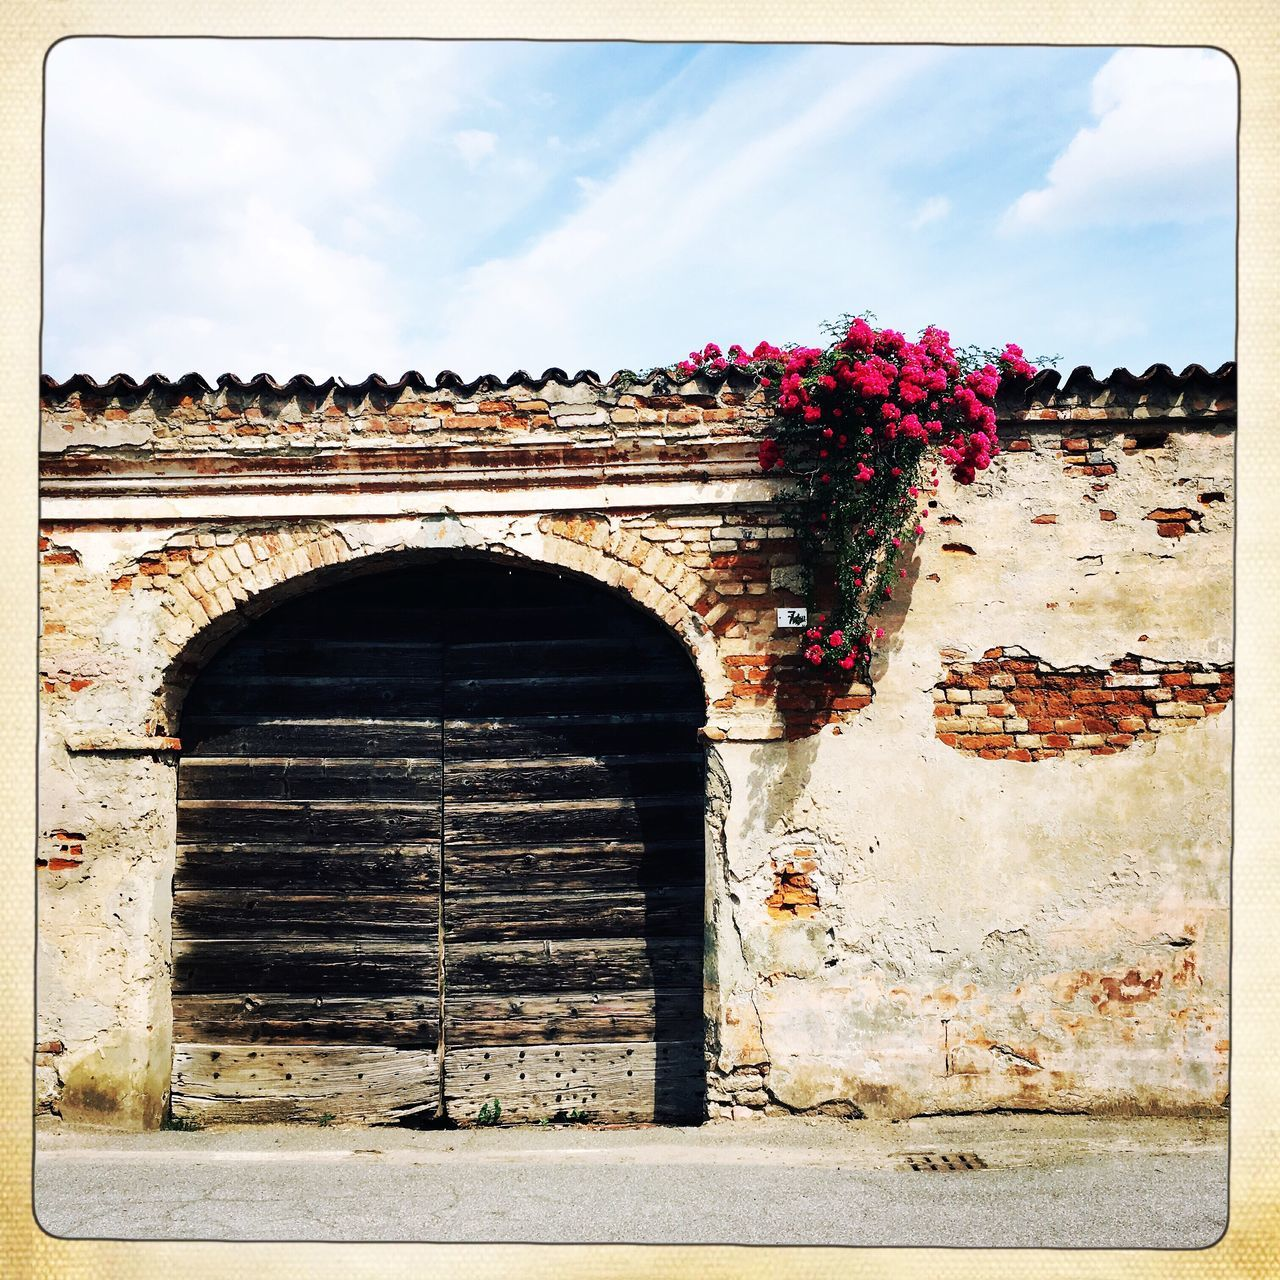 FLOWERS GROWING ON OLD BUILDING